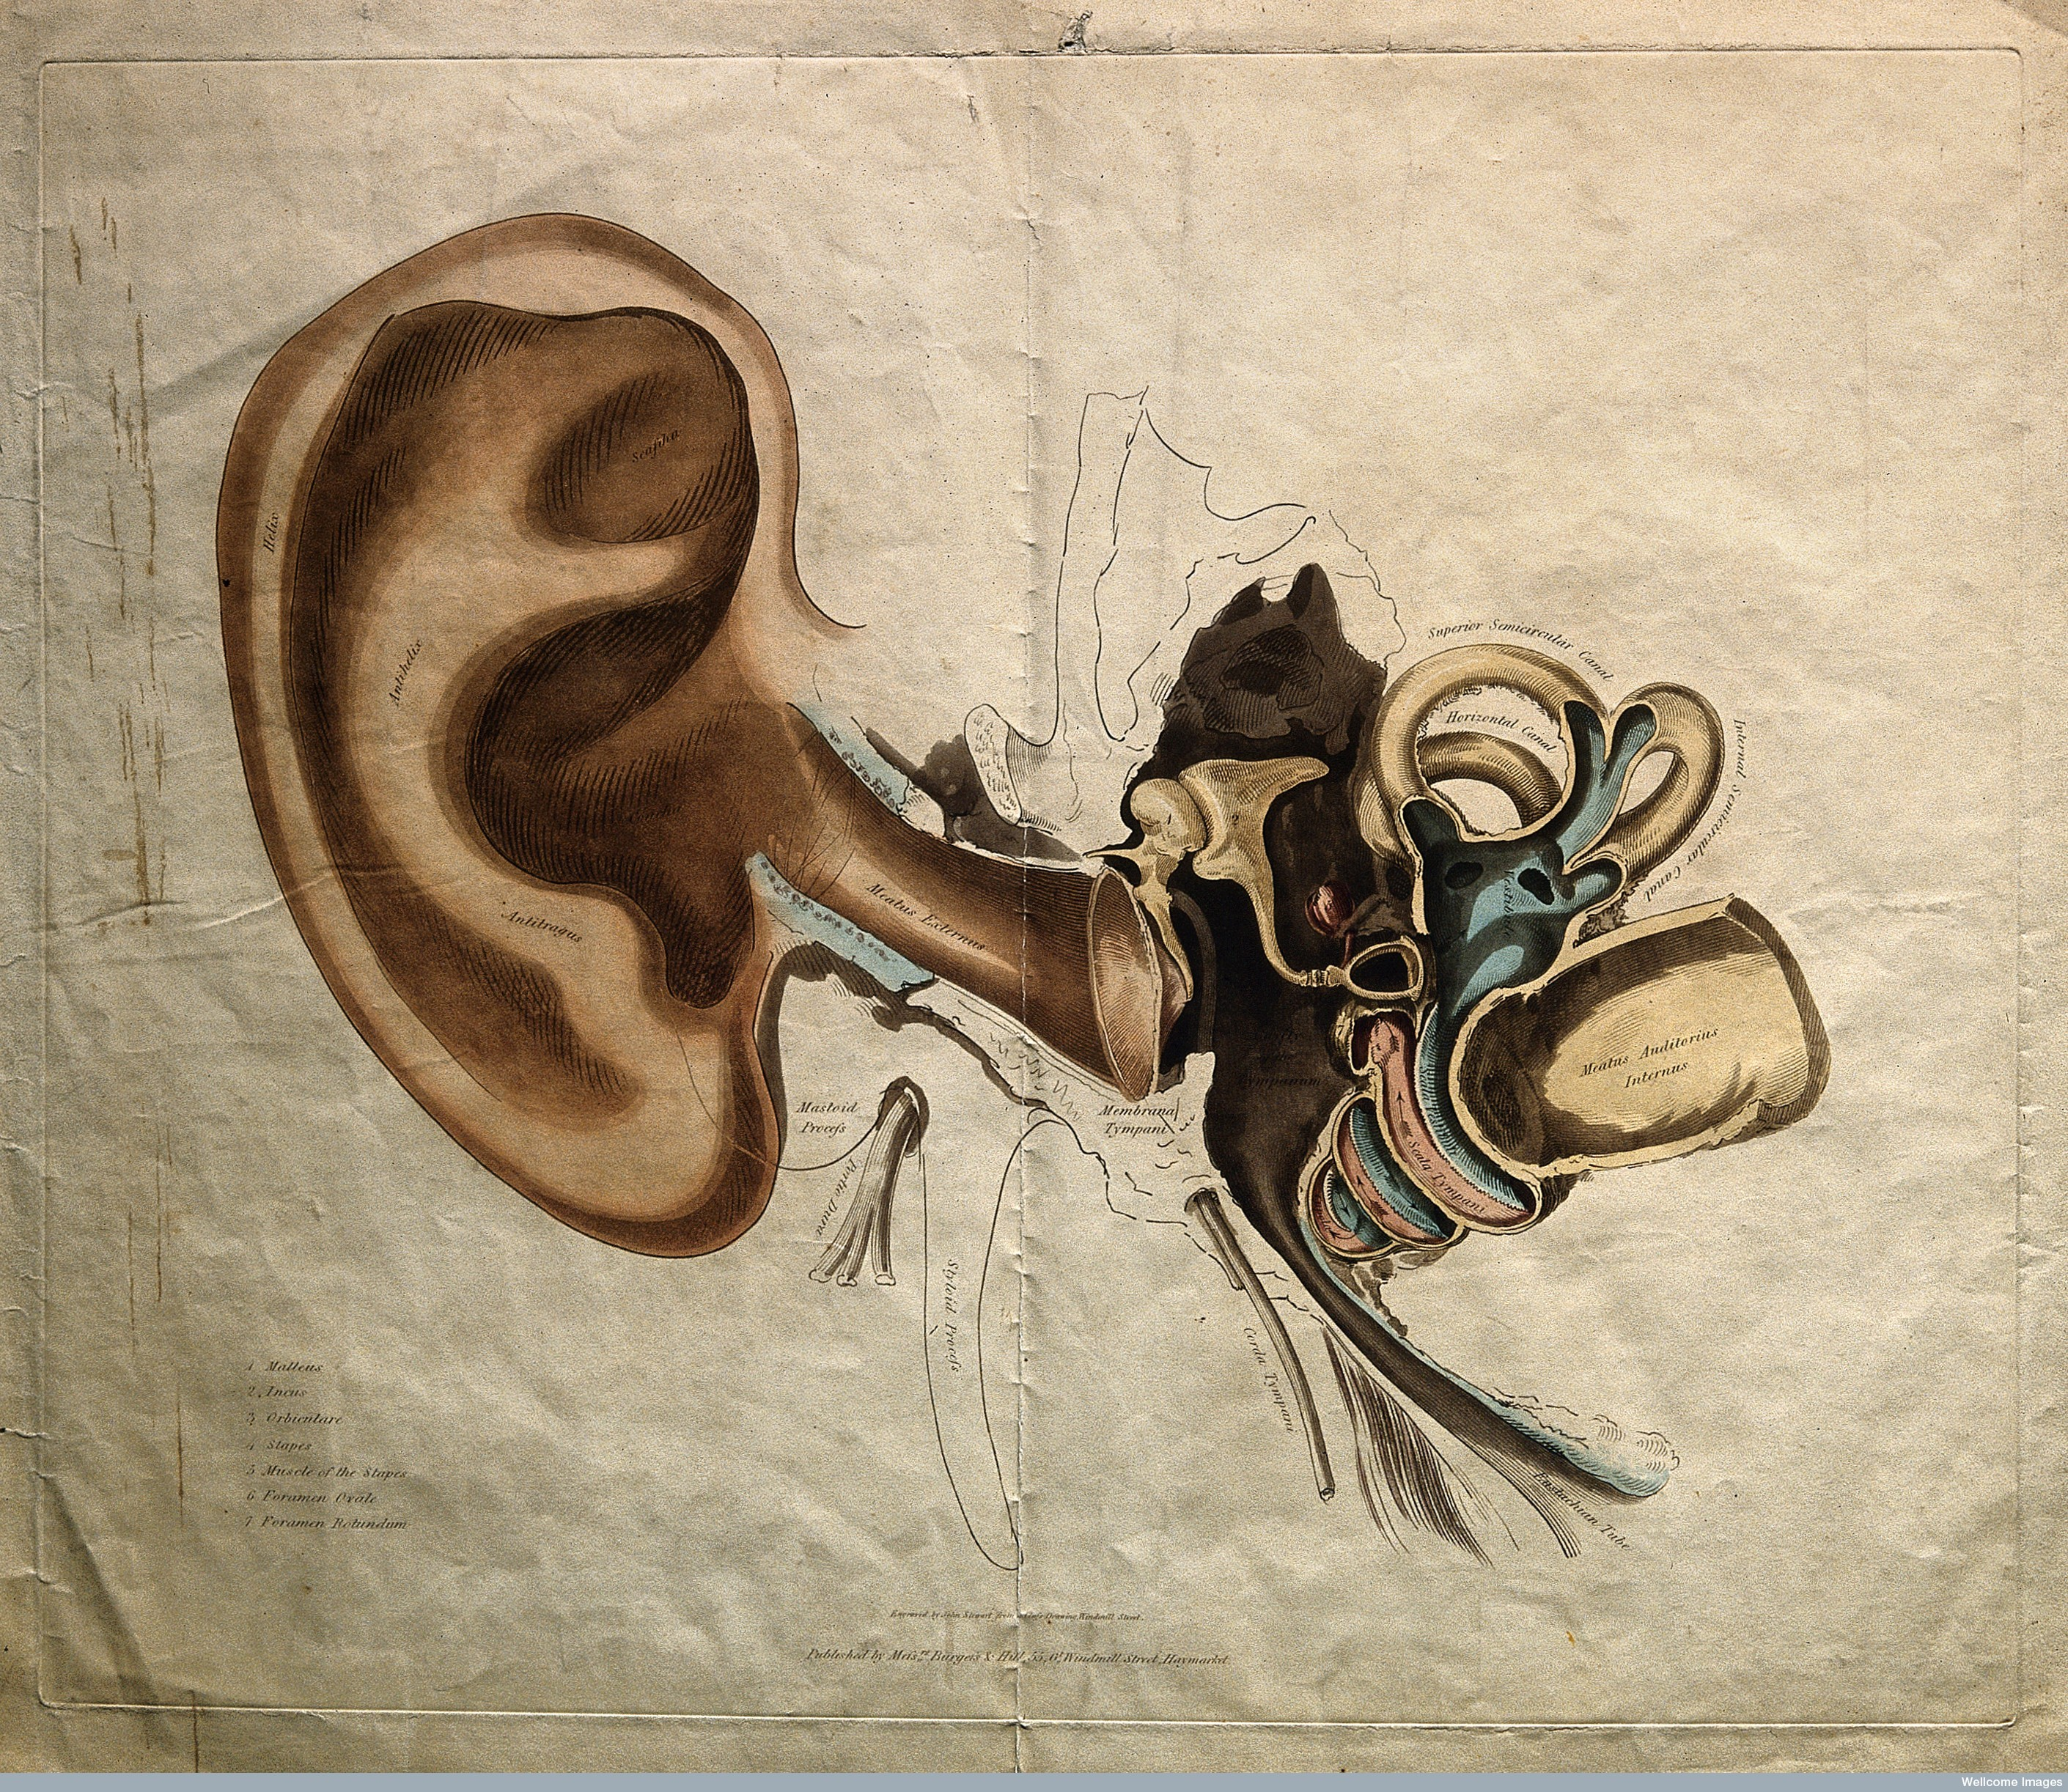 19th century science technology and cultures - V0008879 Structure Of The Outer And Inner Ear Coloured Stipple Credit Wellcome Library